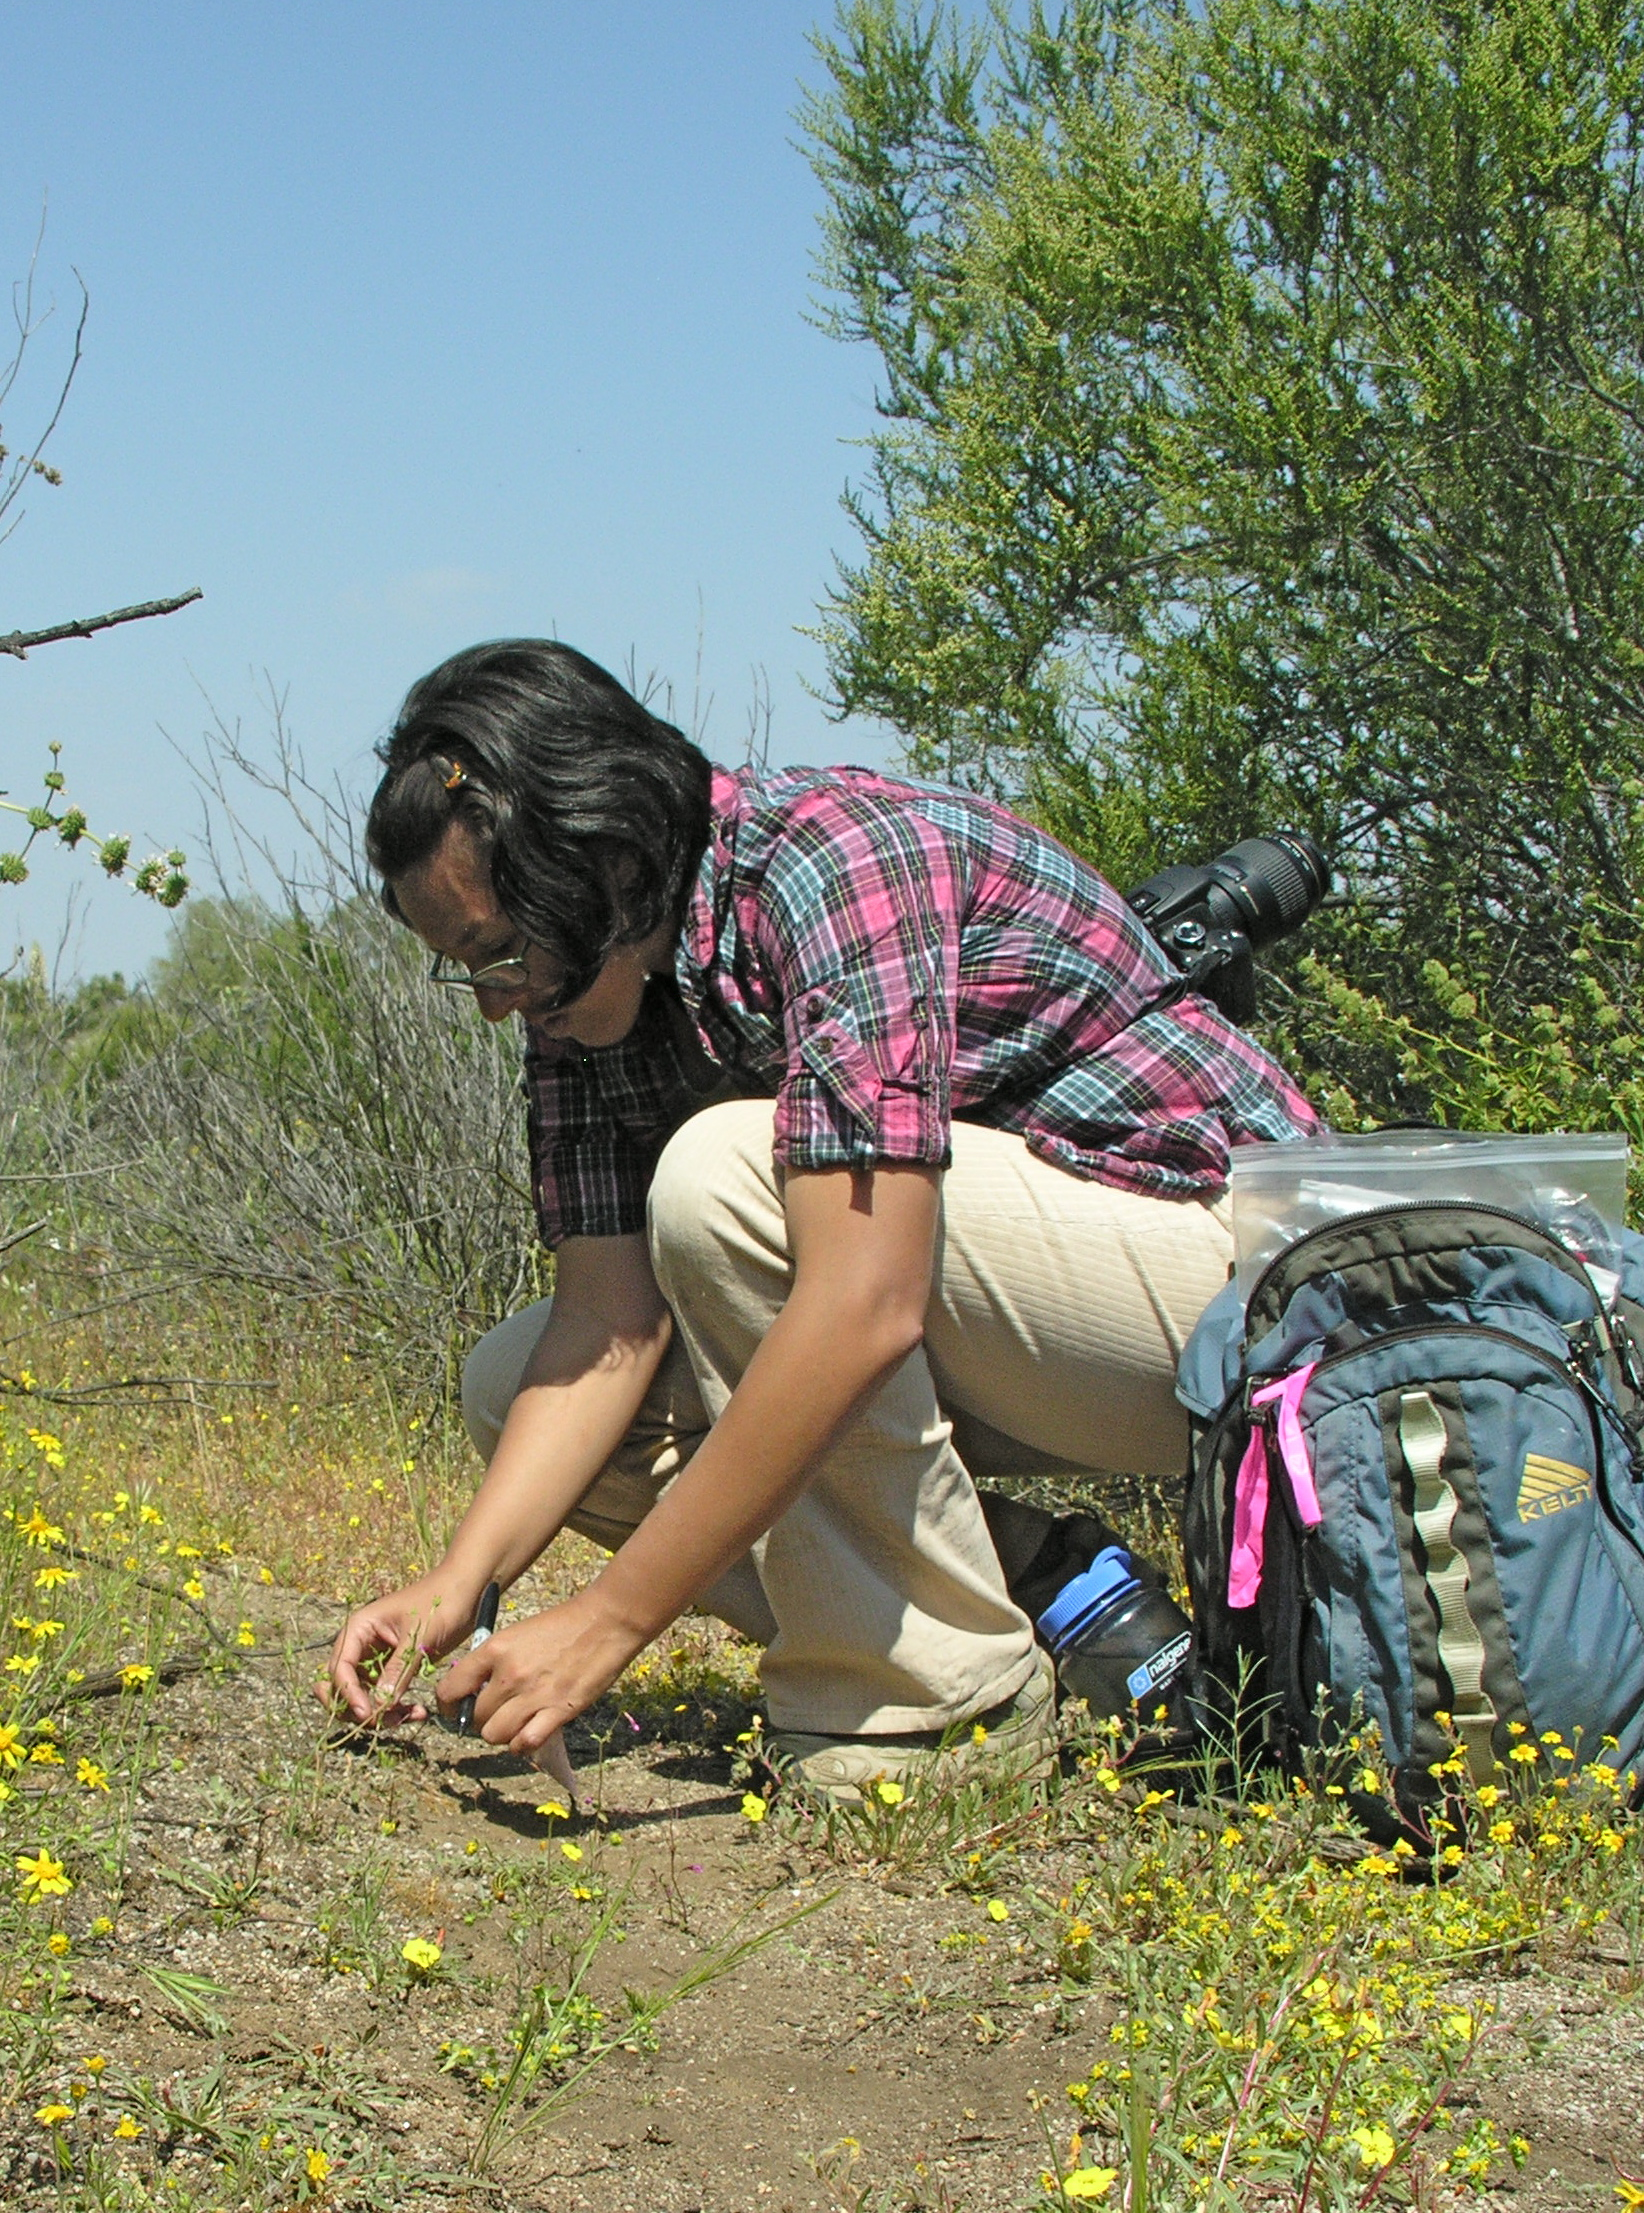 Naomi collecting Mimulus diffusus during her dissertation field work.